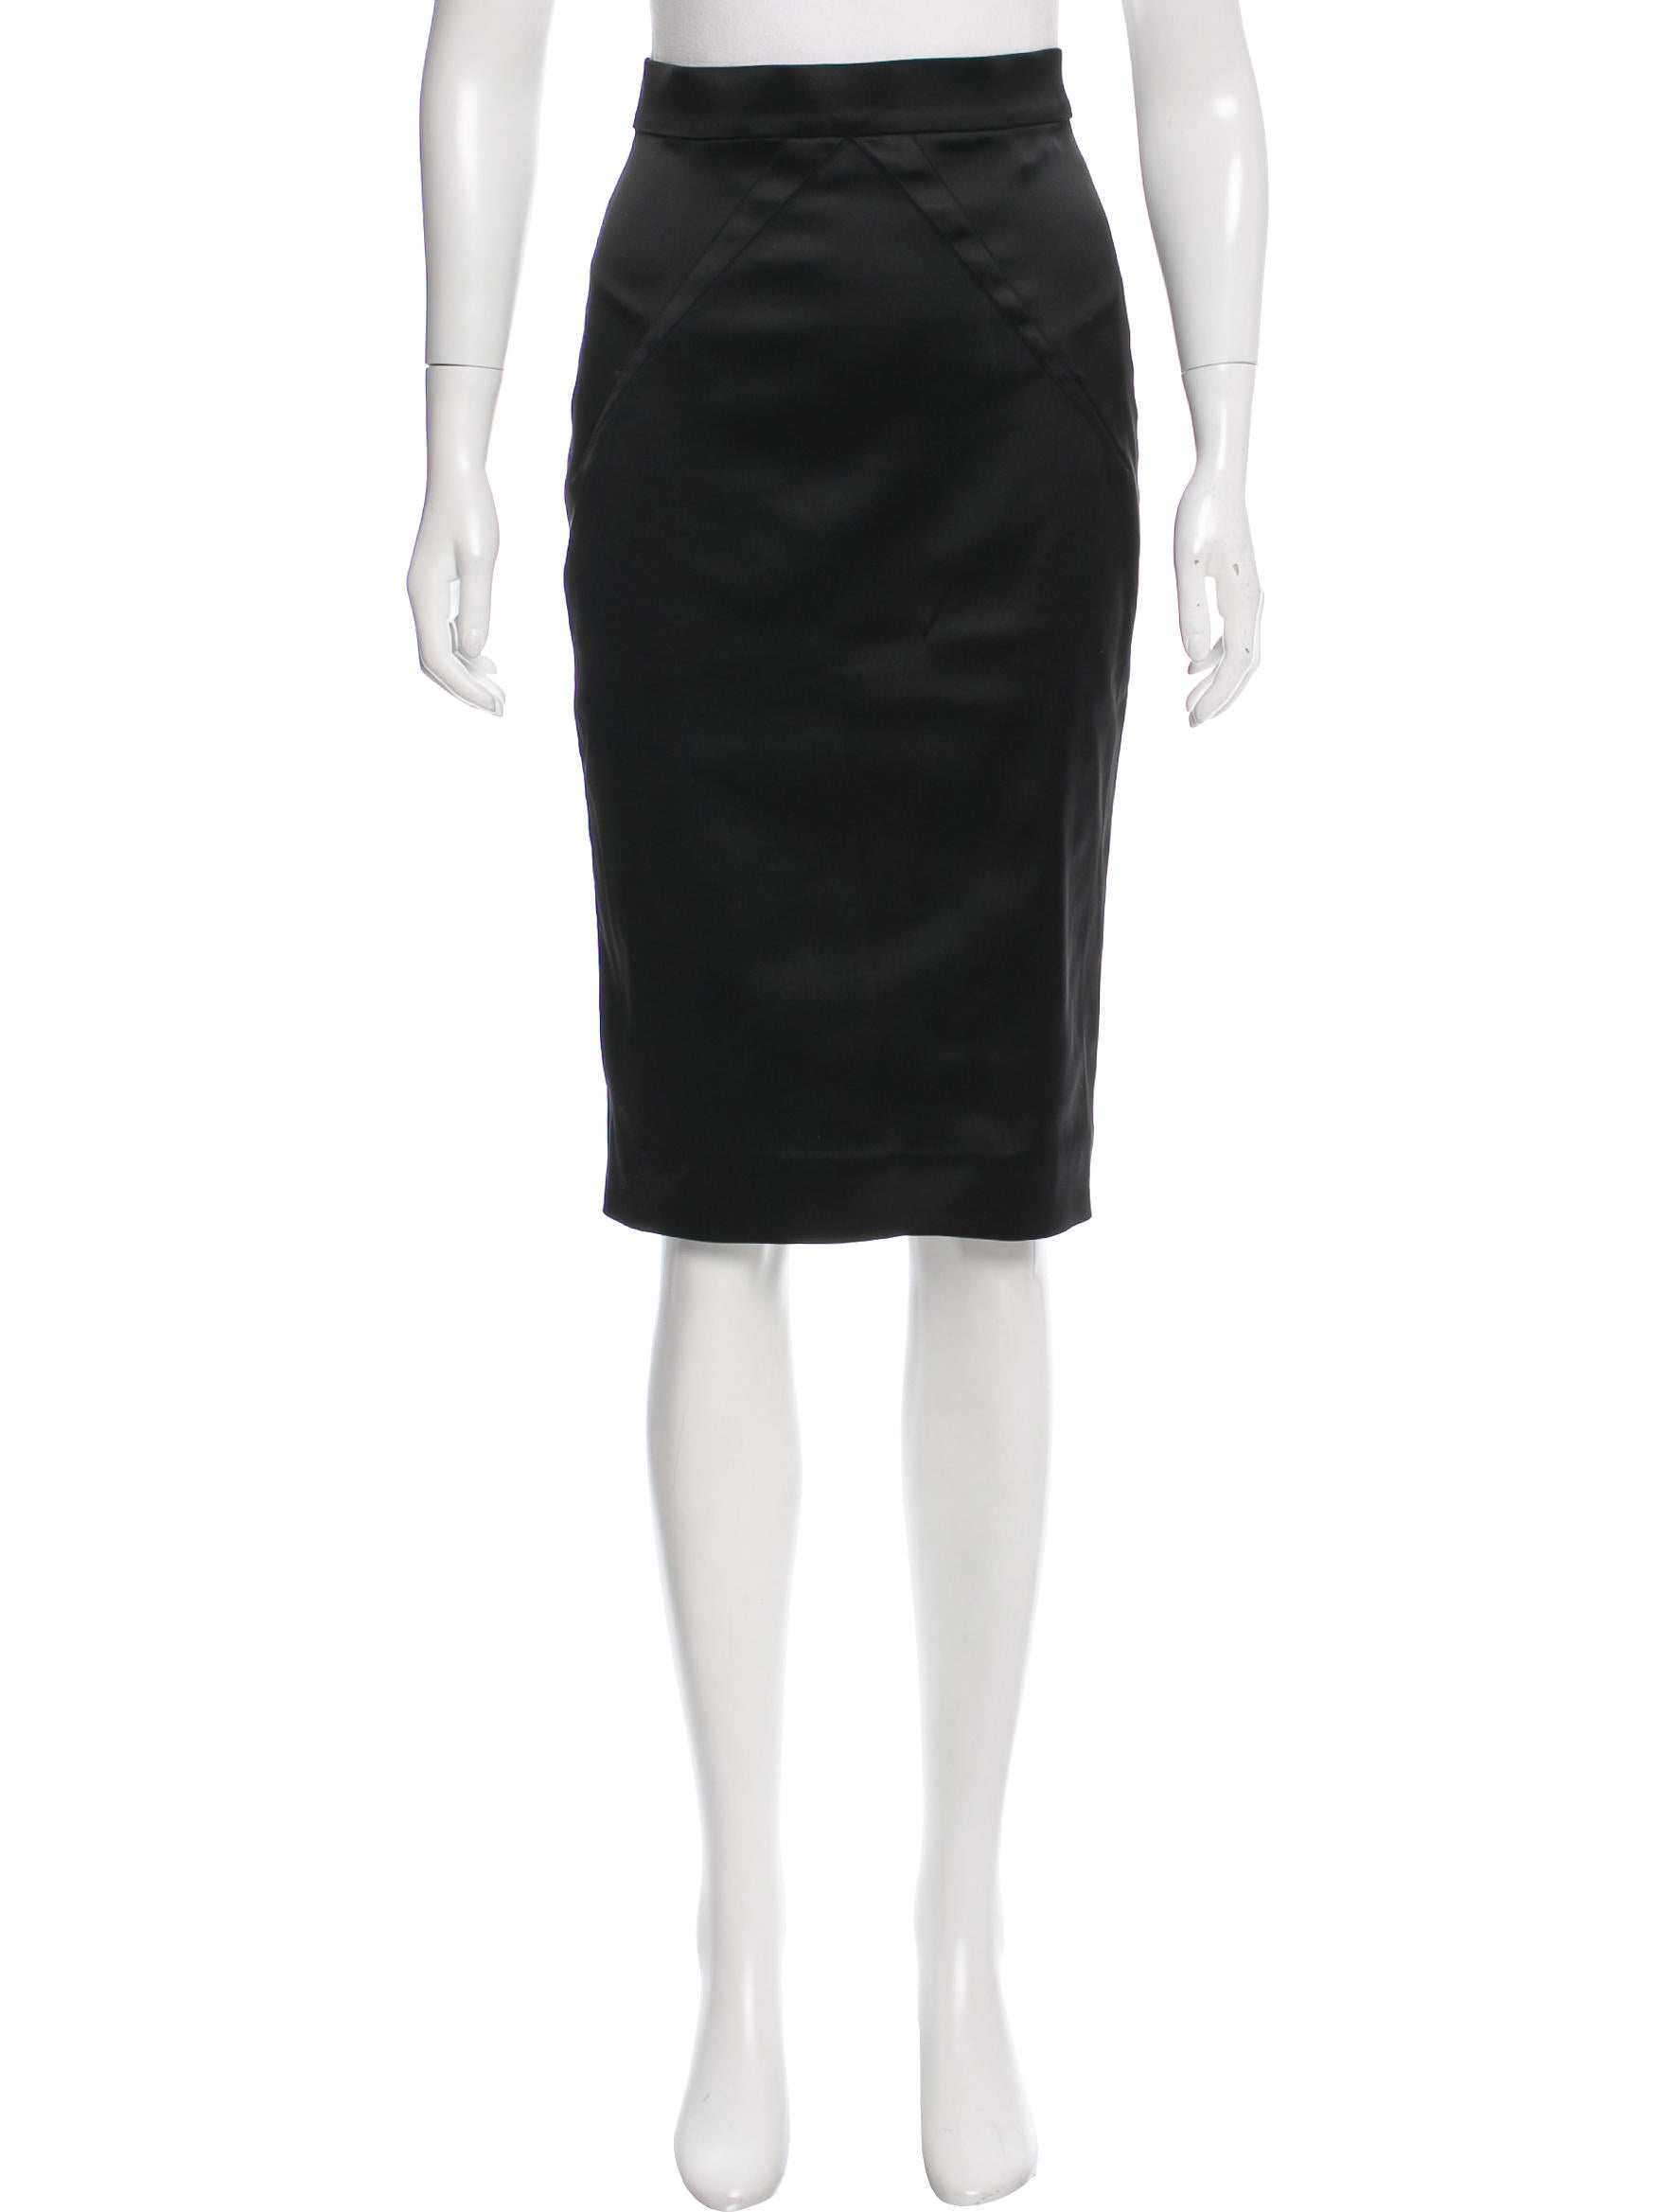 d g knee length pencil skirt clothing wdg35031 the